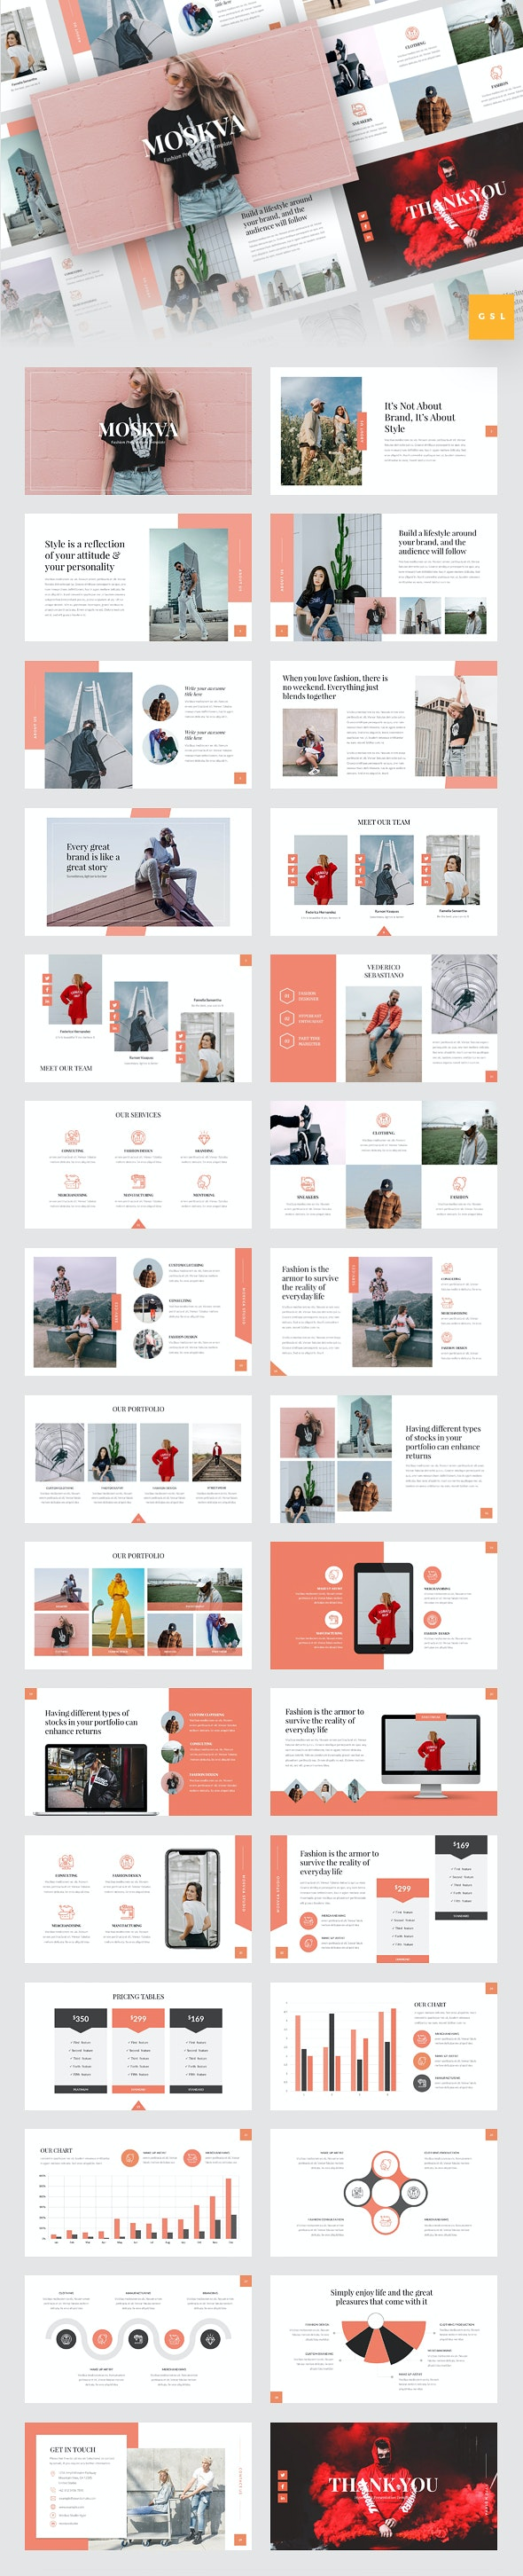 Moskva - Fashion Google Slides Template - Google Slides Presentation Templates